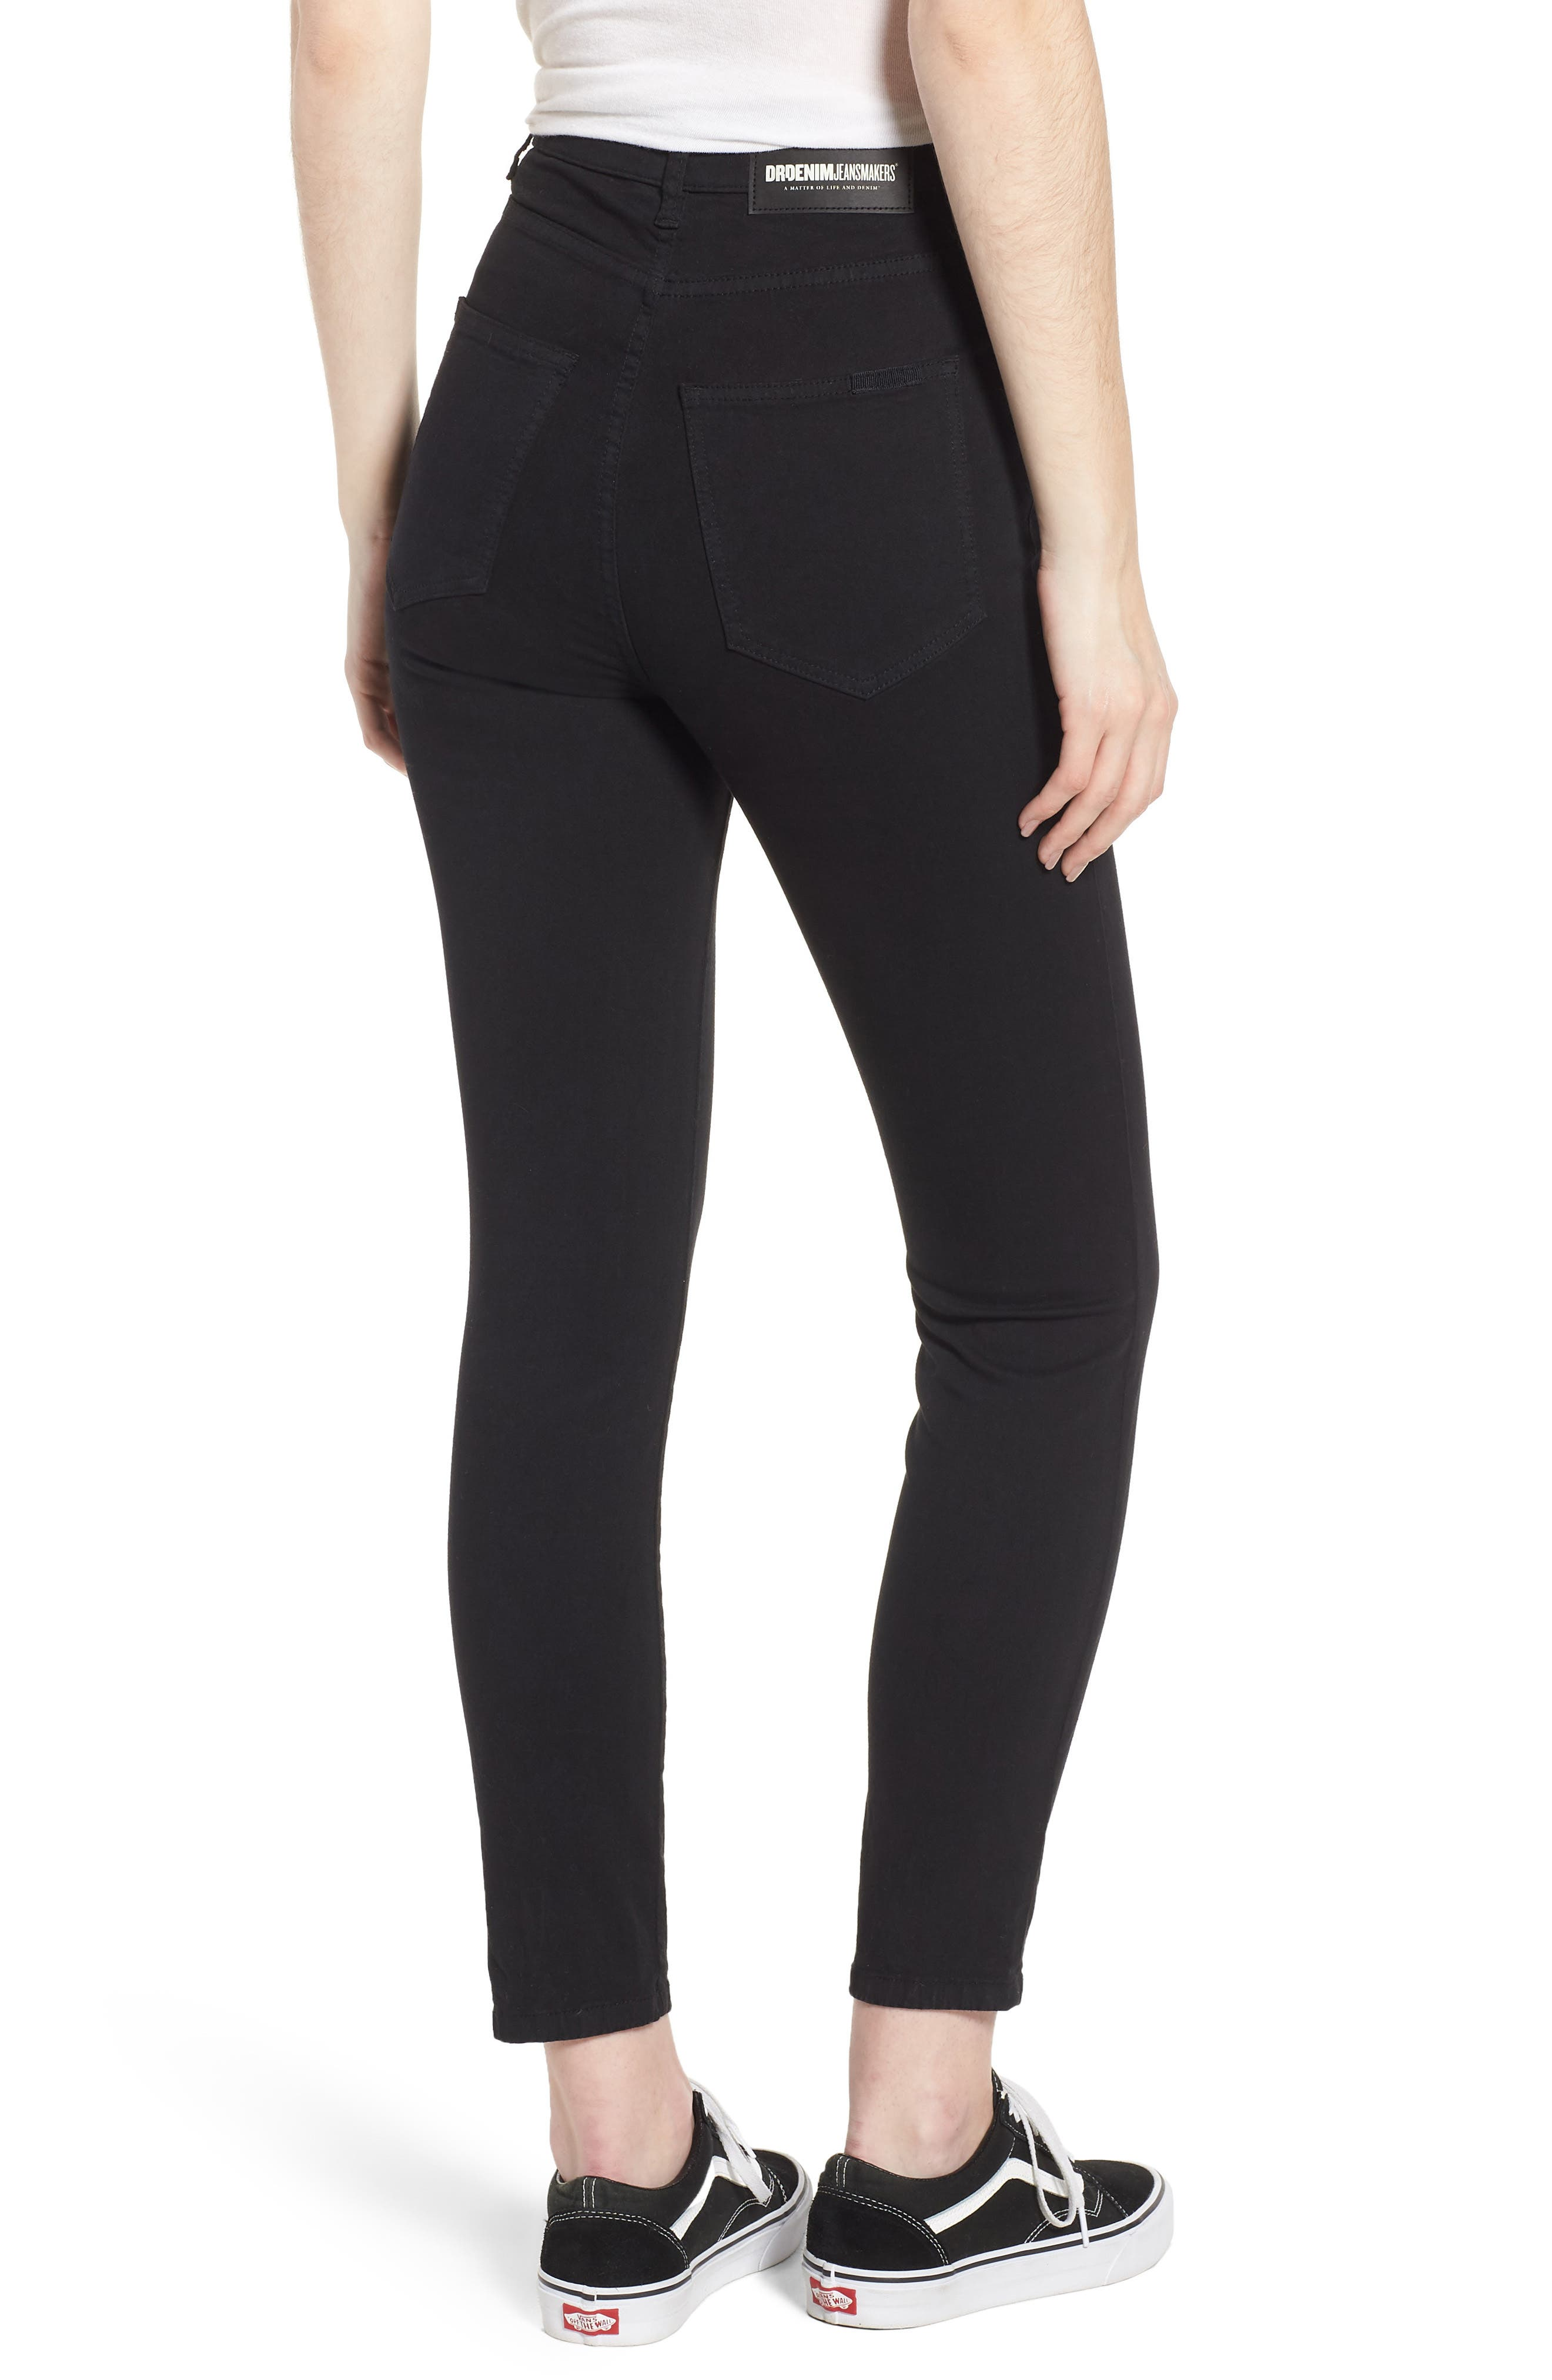 Cropa Cabana Skyhigh Crop Skinny Jeans,                             Alternate thumbnail 2, color,                             Black